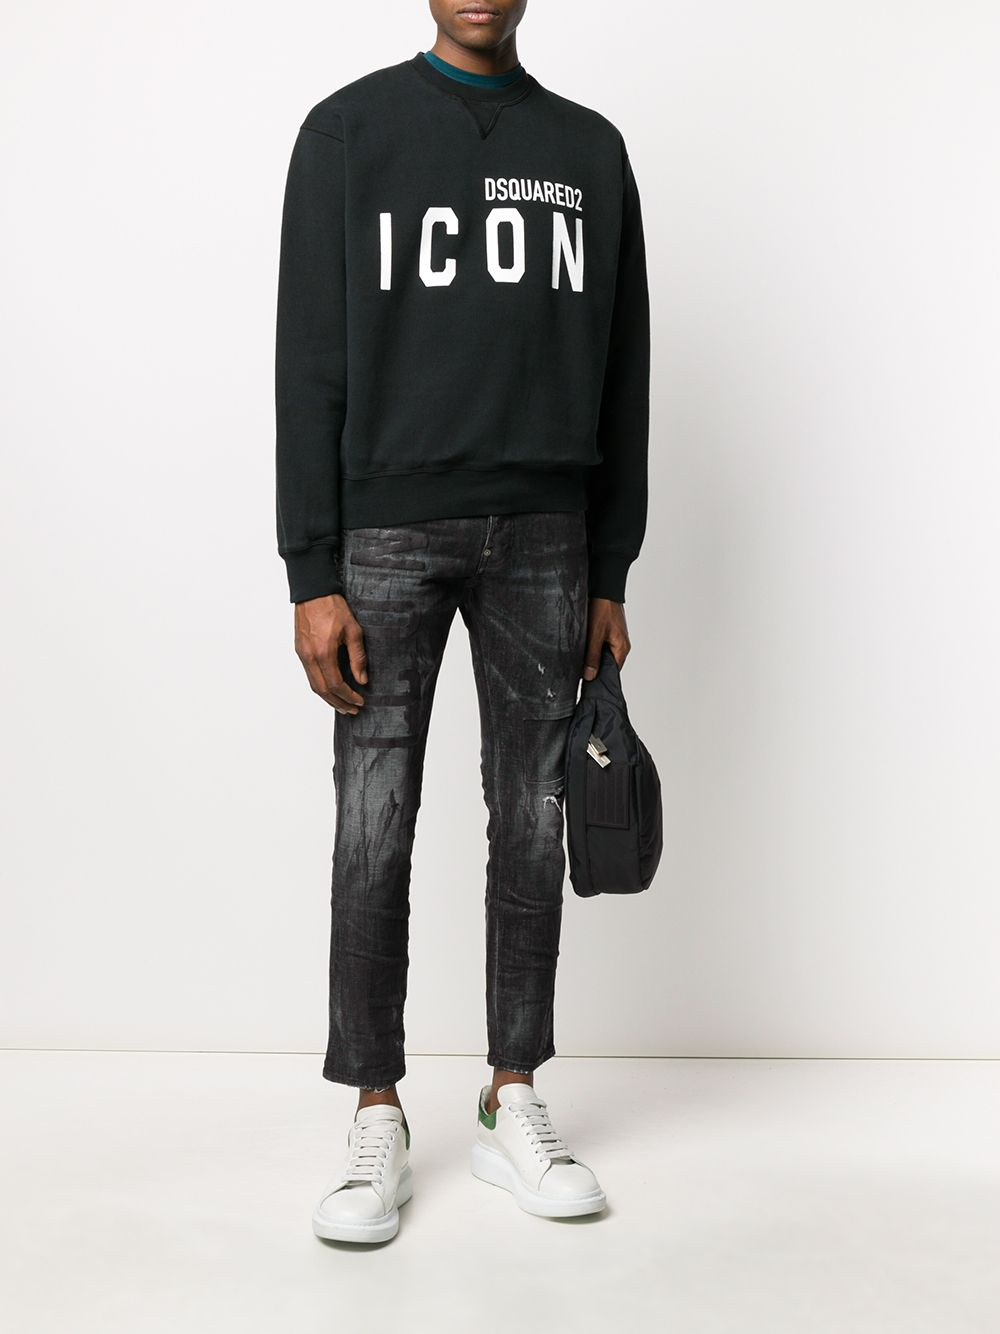 DSQUARED2 Icon Logo Sweatshirt Black/White